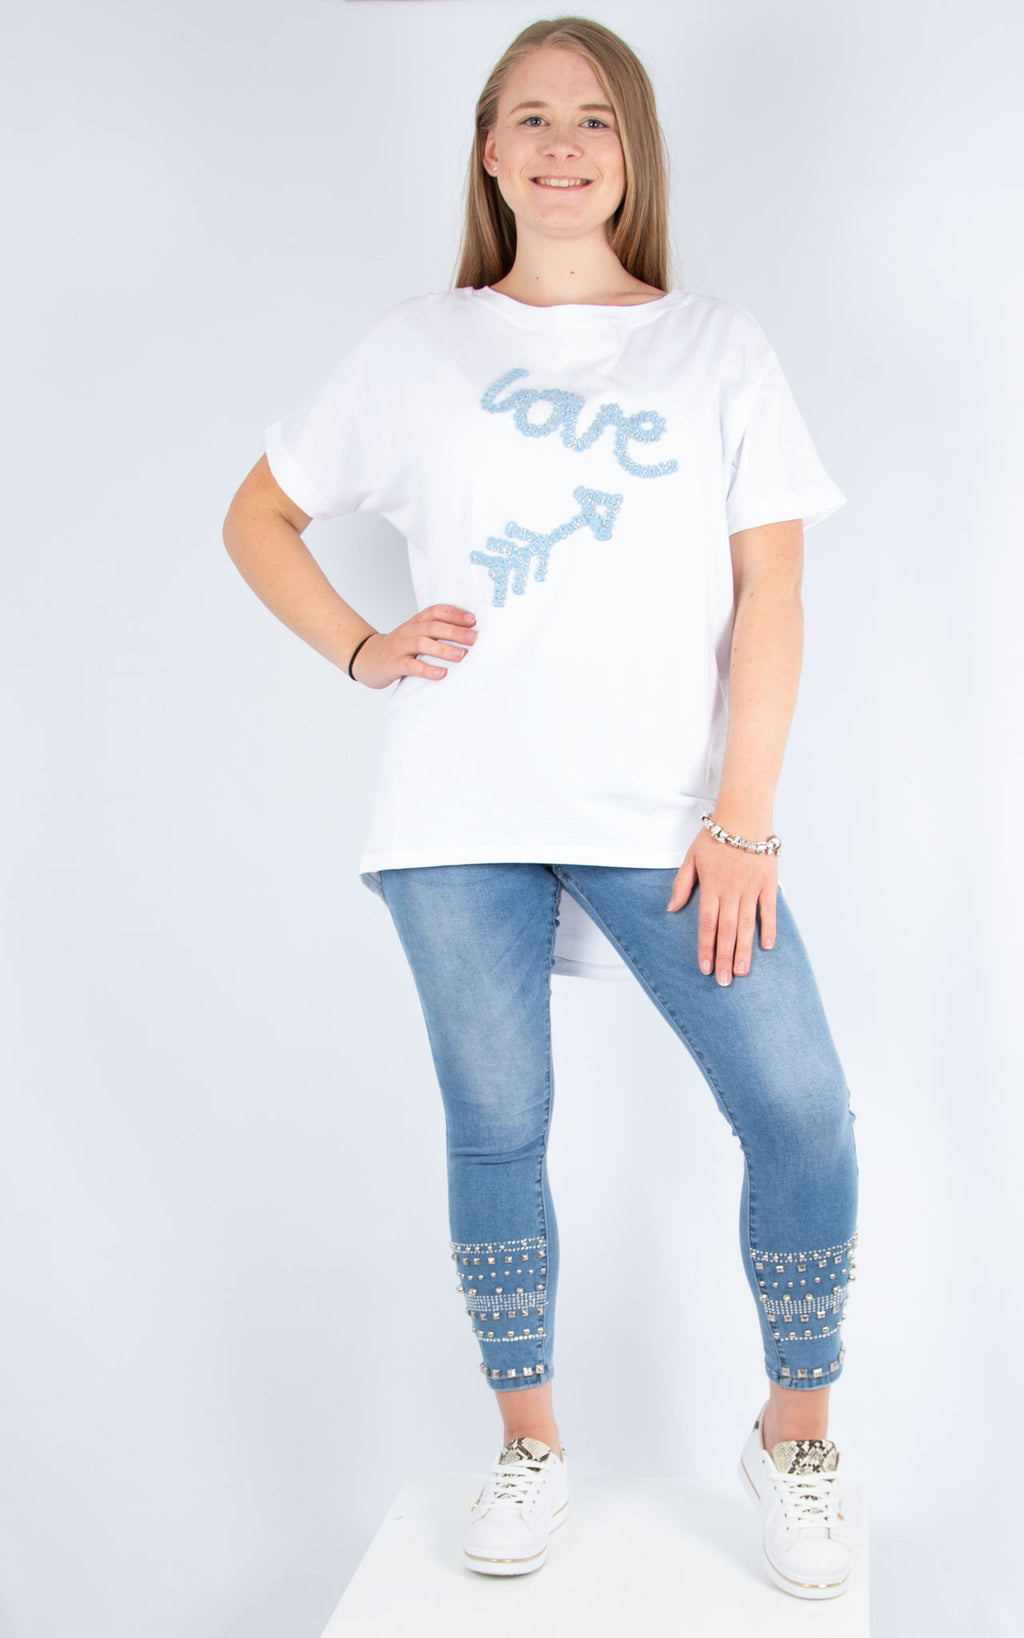 Blue Love T-Shirt | Made in Italy